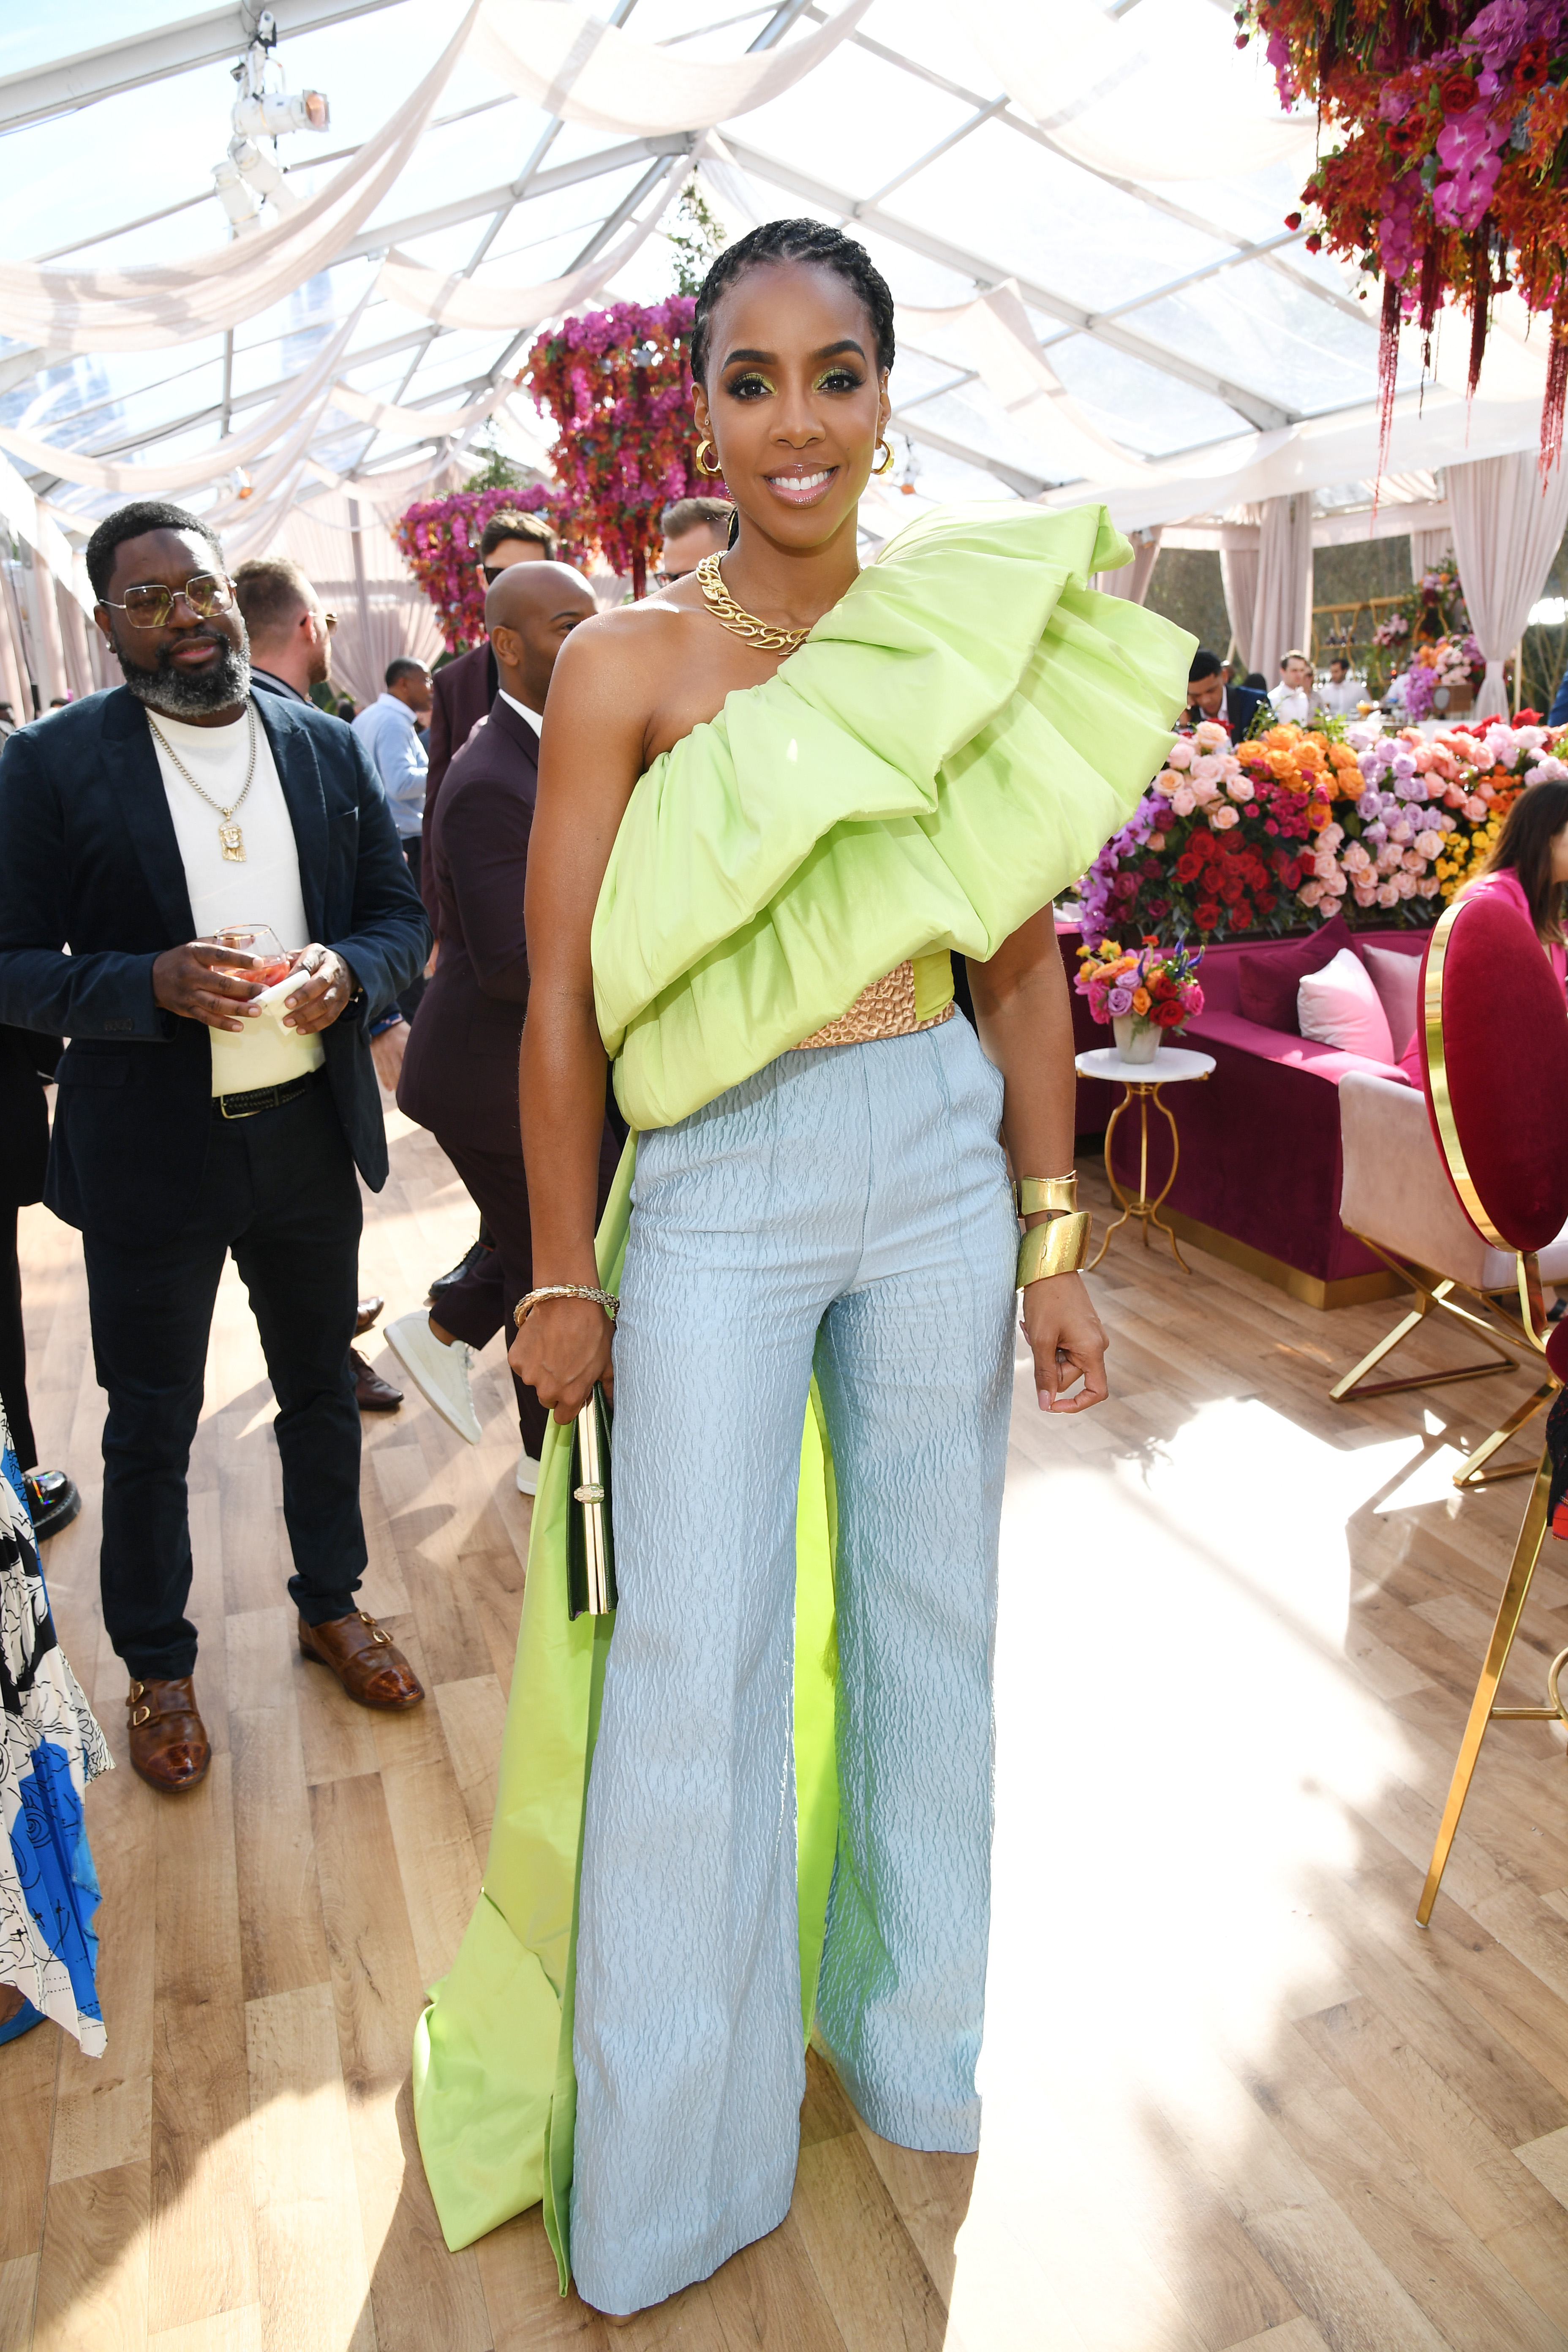 LOS ANGELES, CALIFORNIA - JANUARY 25: Kelly Rowland attends 2020 Roc Nation THE BRUNCH on January 25, 2020 in Los Angeles, California. (Photo by Kevin Mazur/Getty Images for Roc Nation)